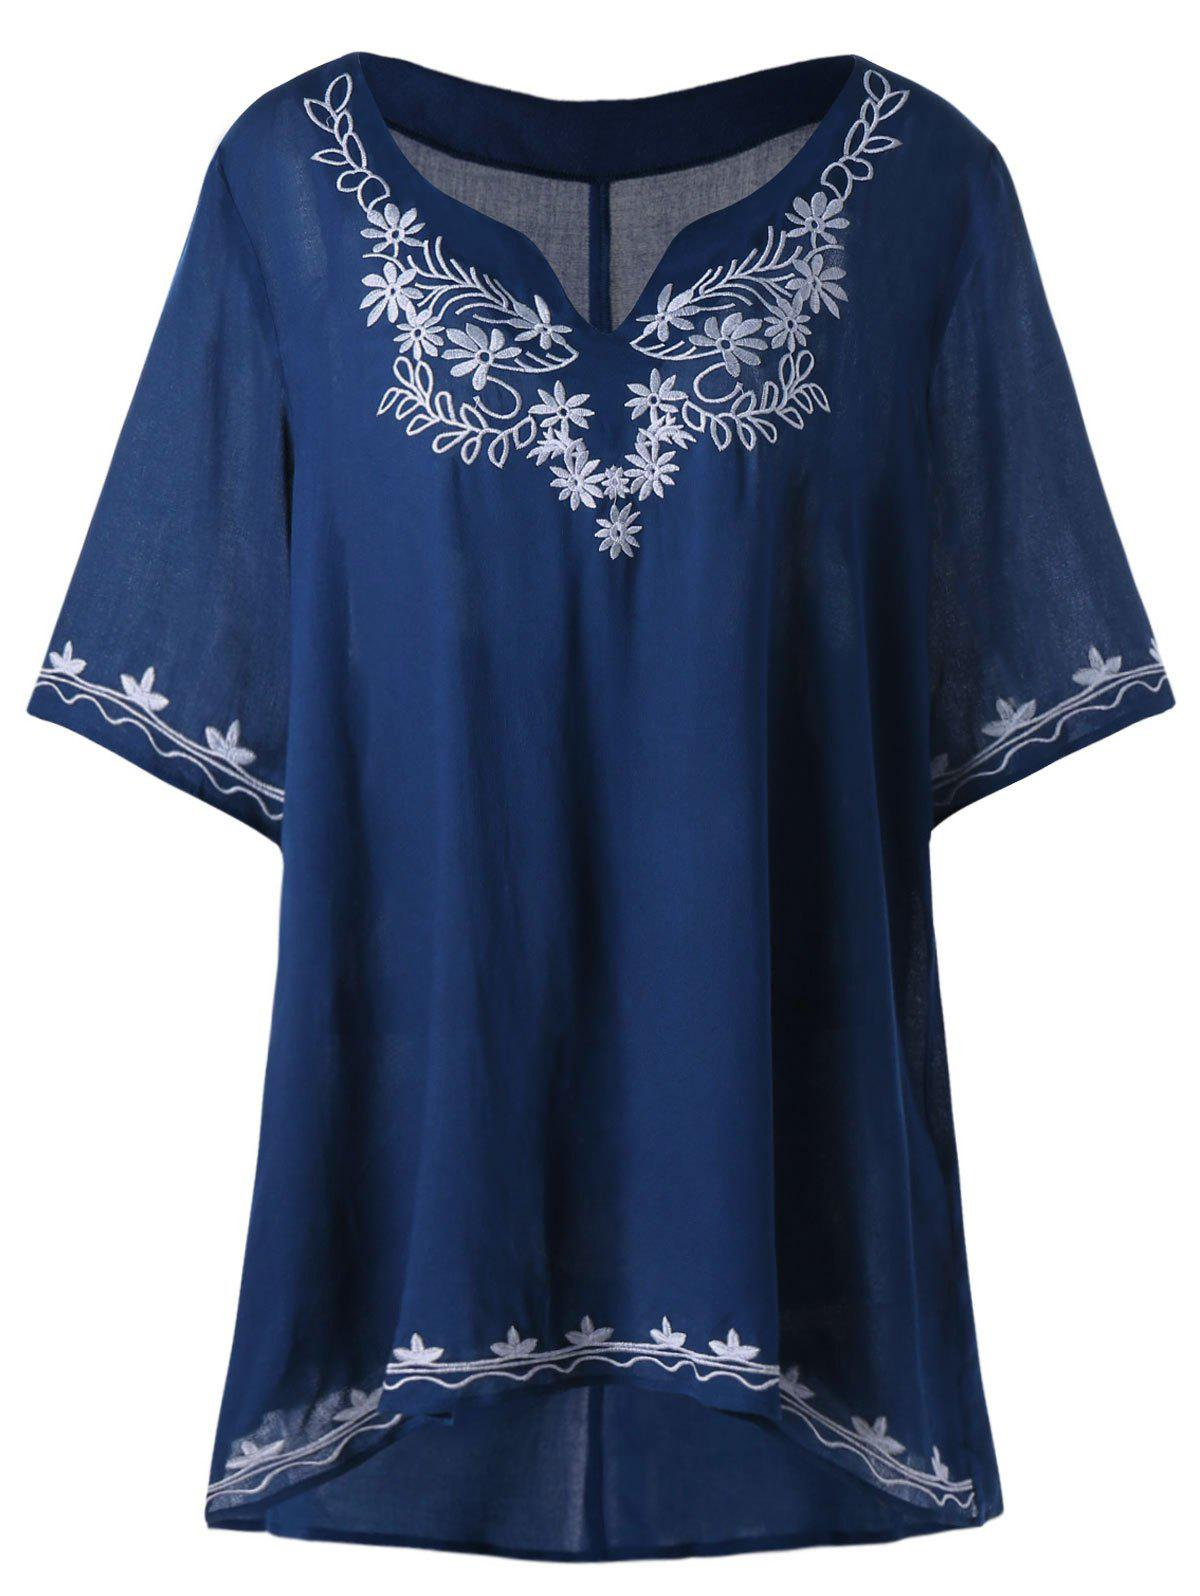 Plus Size Embroidered High Low Tunic Blouse plus size embroidered high low tunic blouse